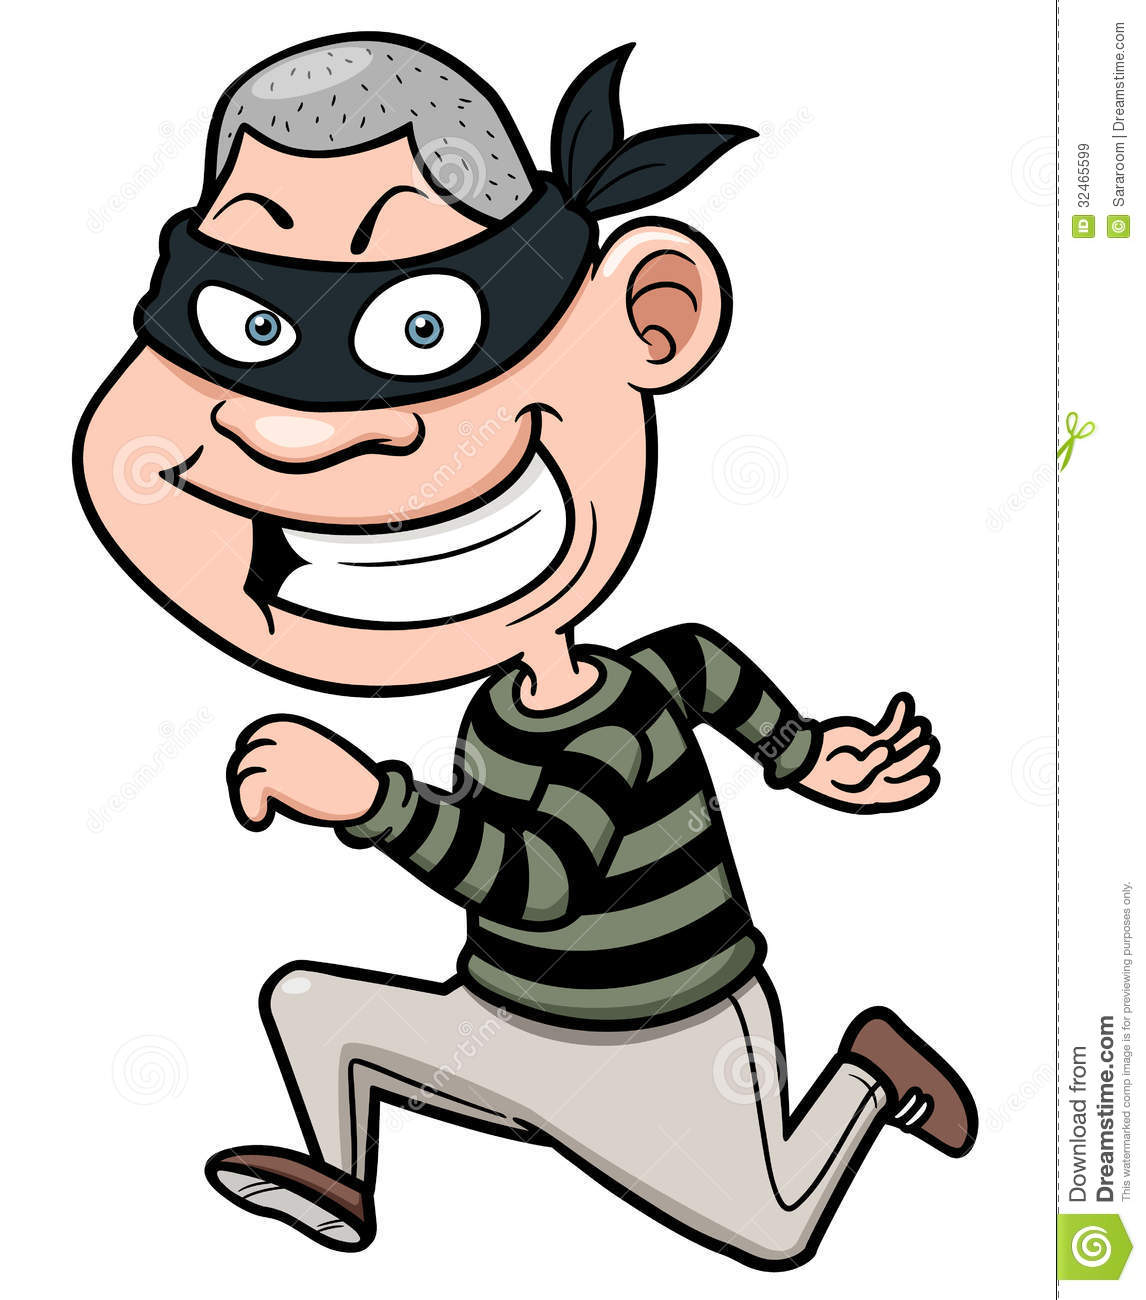 Animated robber clipart. Thief clipartfest s and